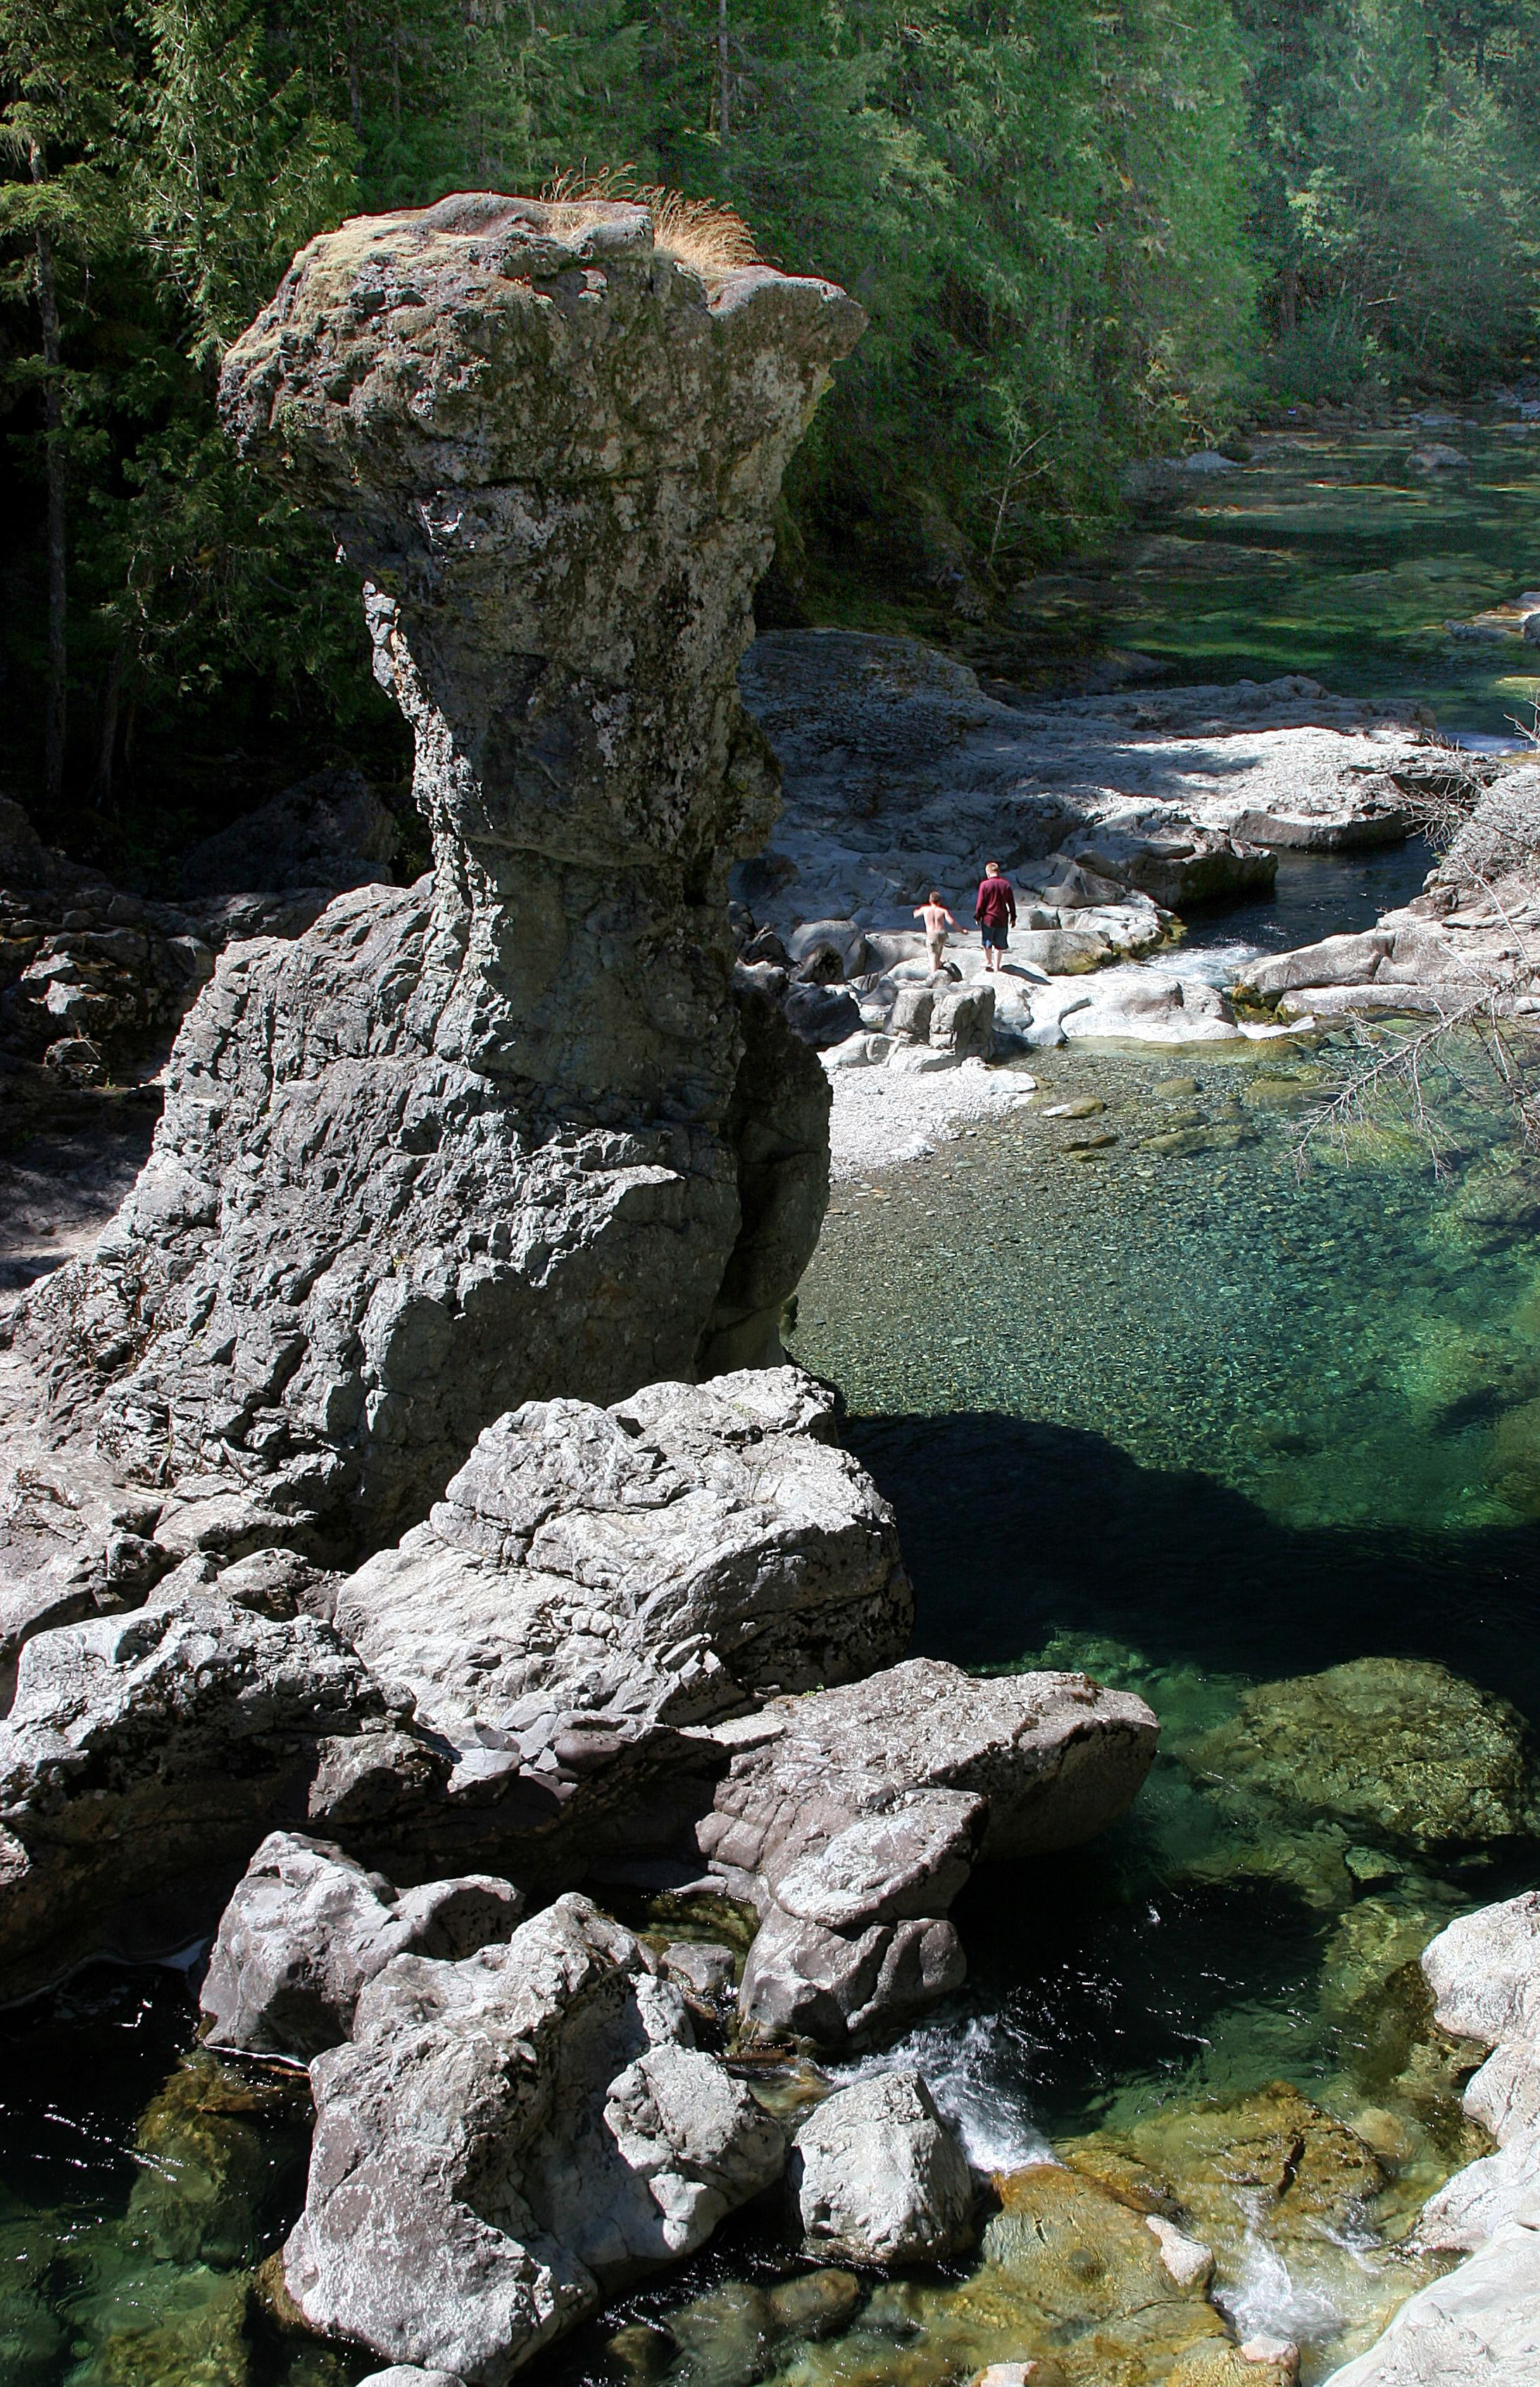 Hiking in the Three Pools area in the Opal Creek Wilderness (USDA Forest Service)